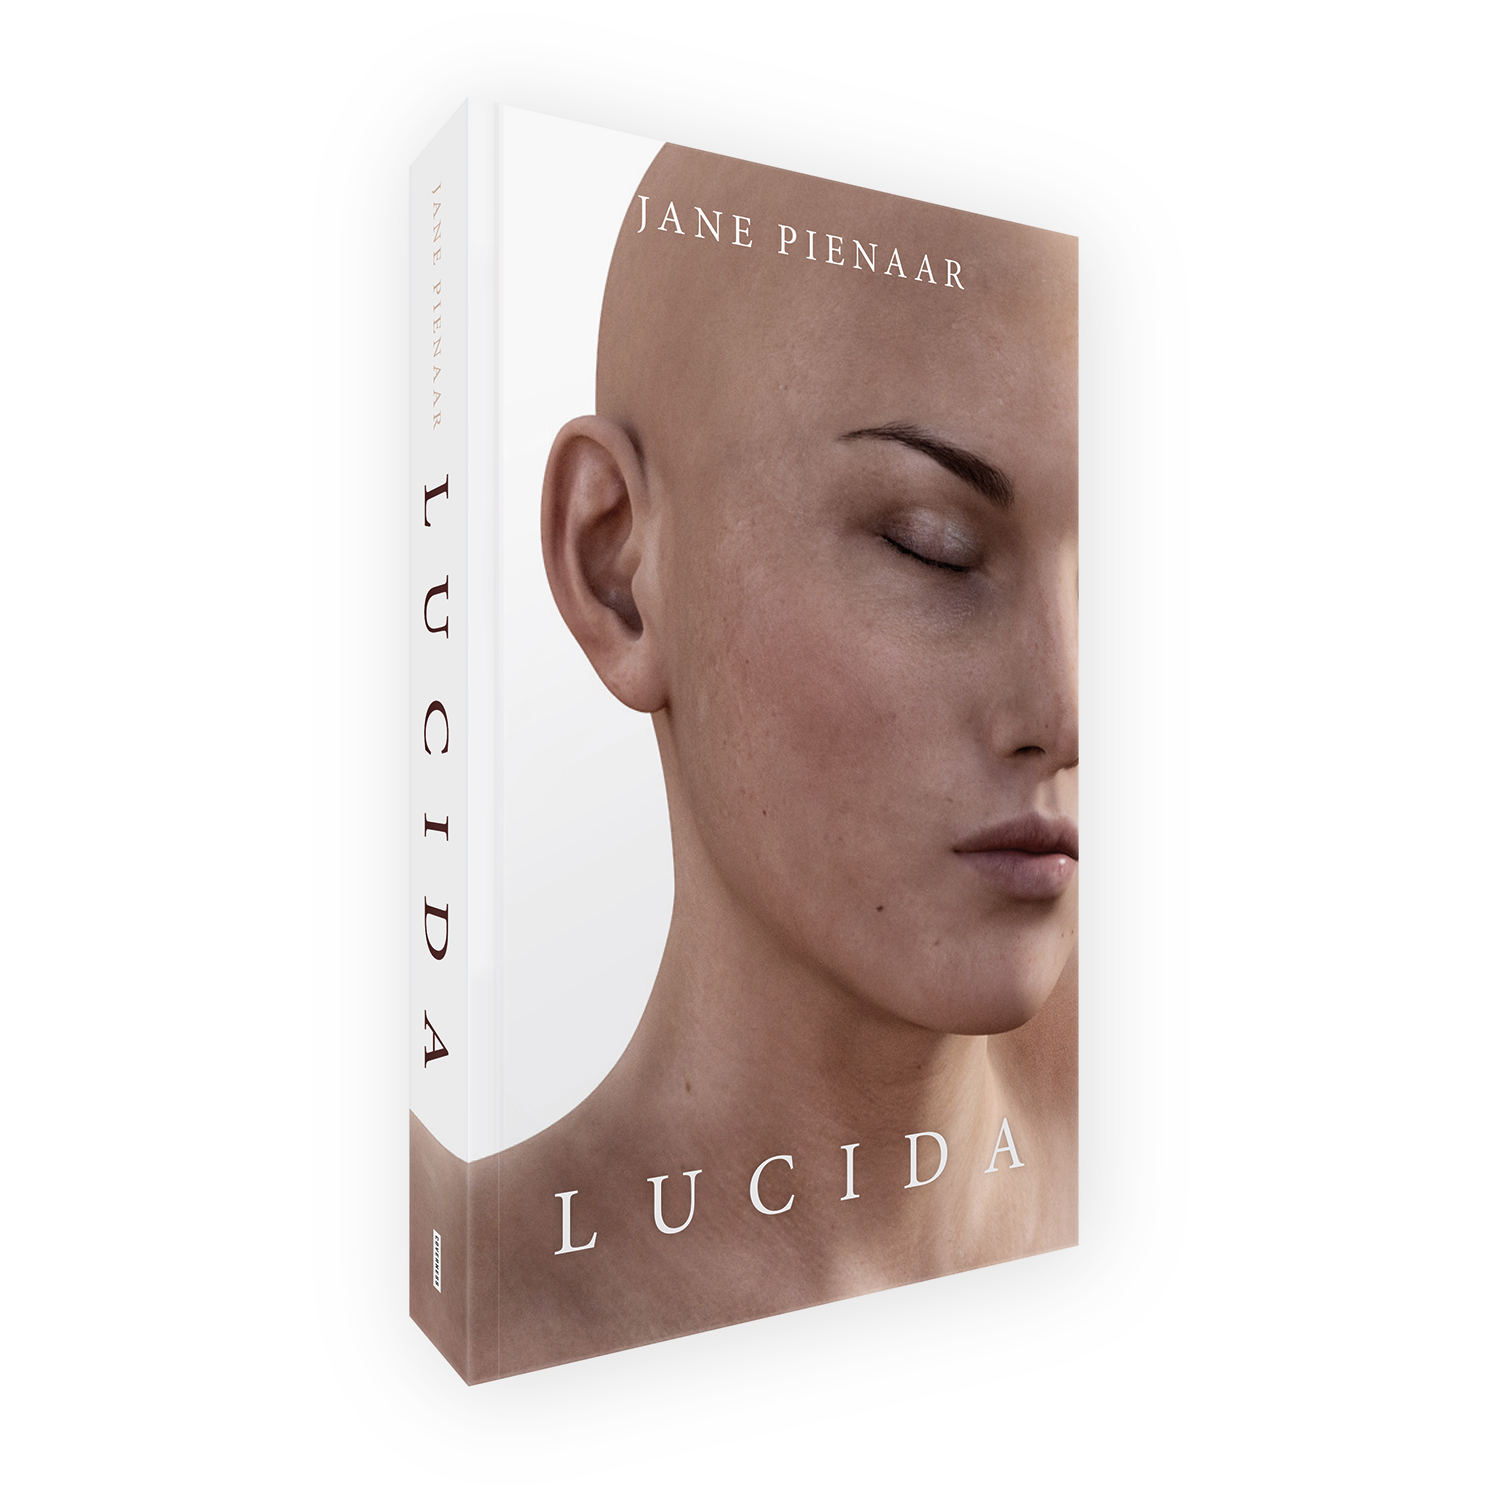 'Lucida' is a bespoke cover design for a modern scifi novel. The book cover was designed by Mark Thomas, of coverness.com. To find out more about my book design services, please visit www.coverness.com.